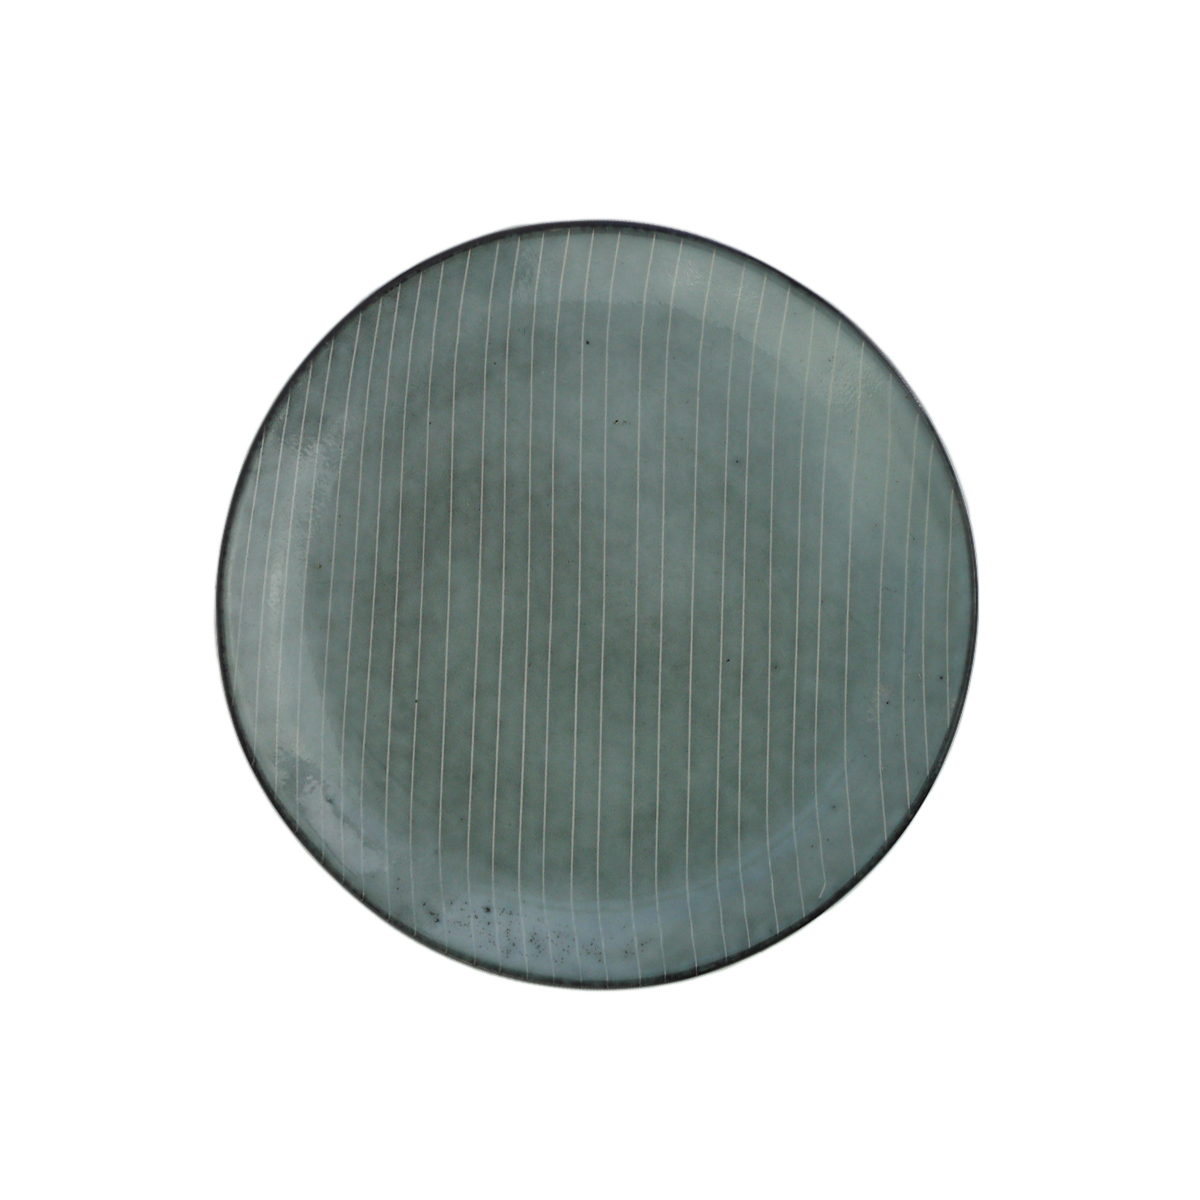 14441074 nordic sea lunch plate Broste